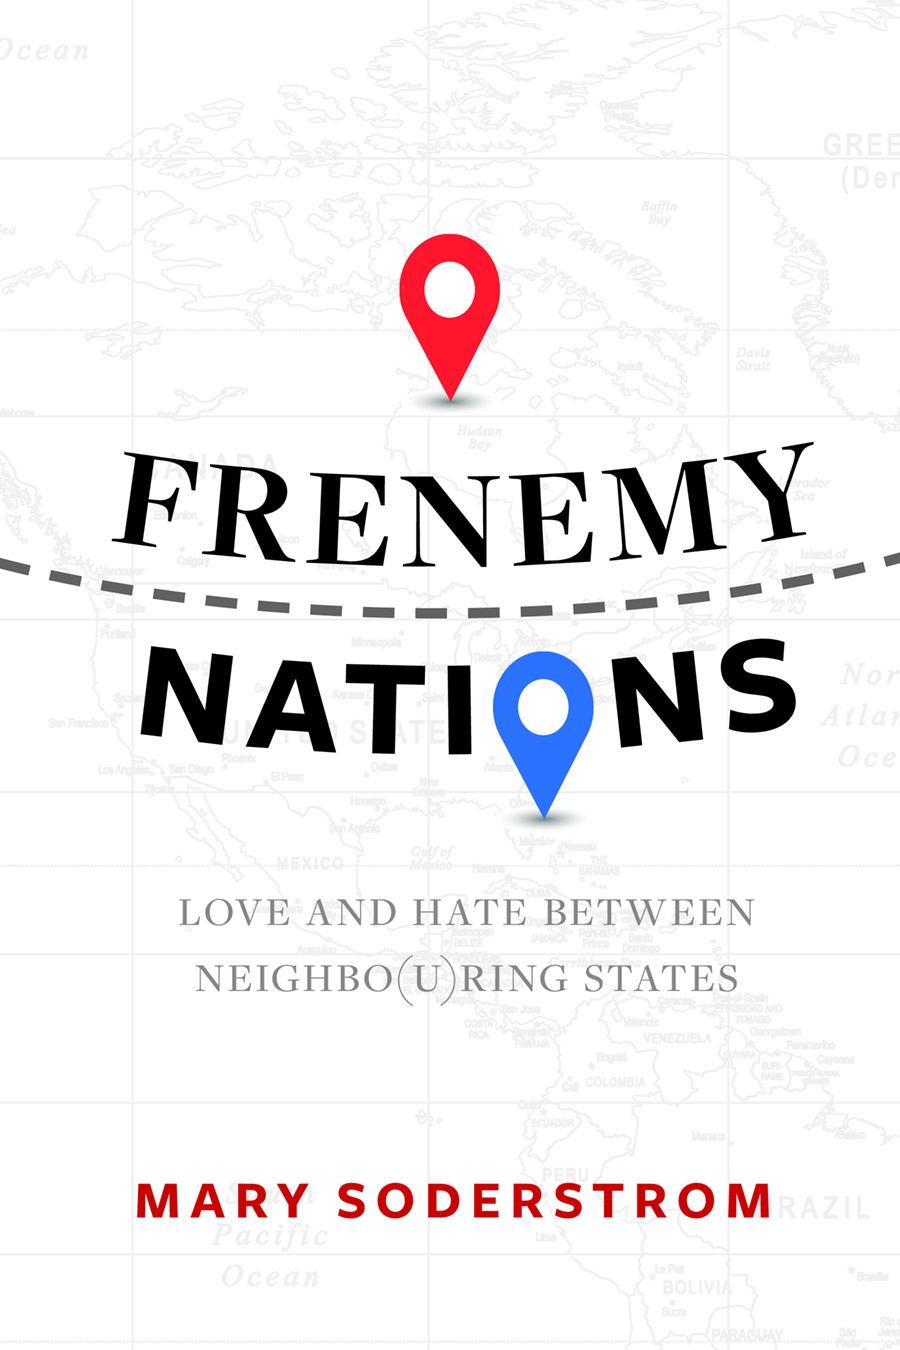 Frenemy Nations: More Relevant Than Ever